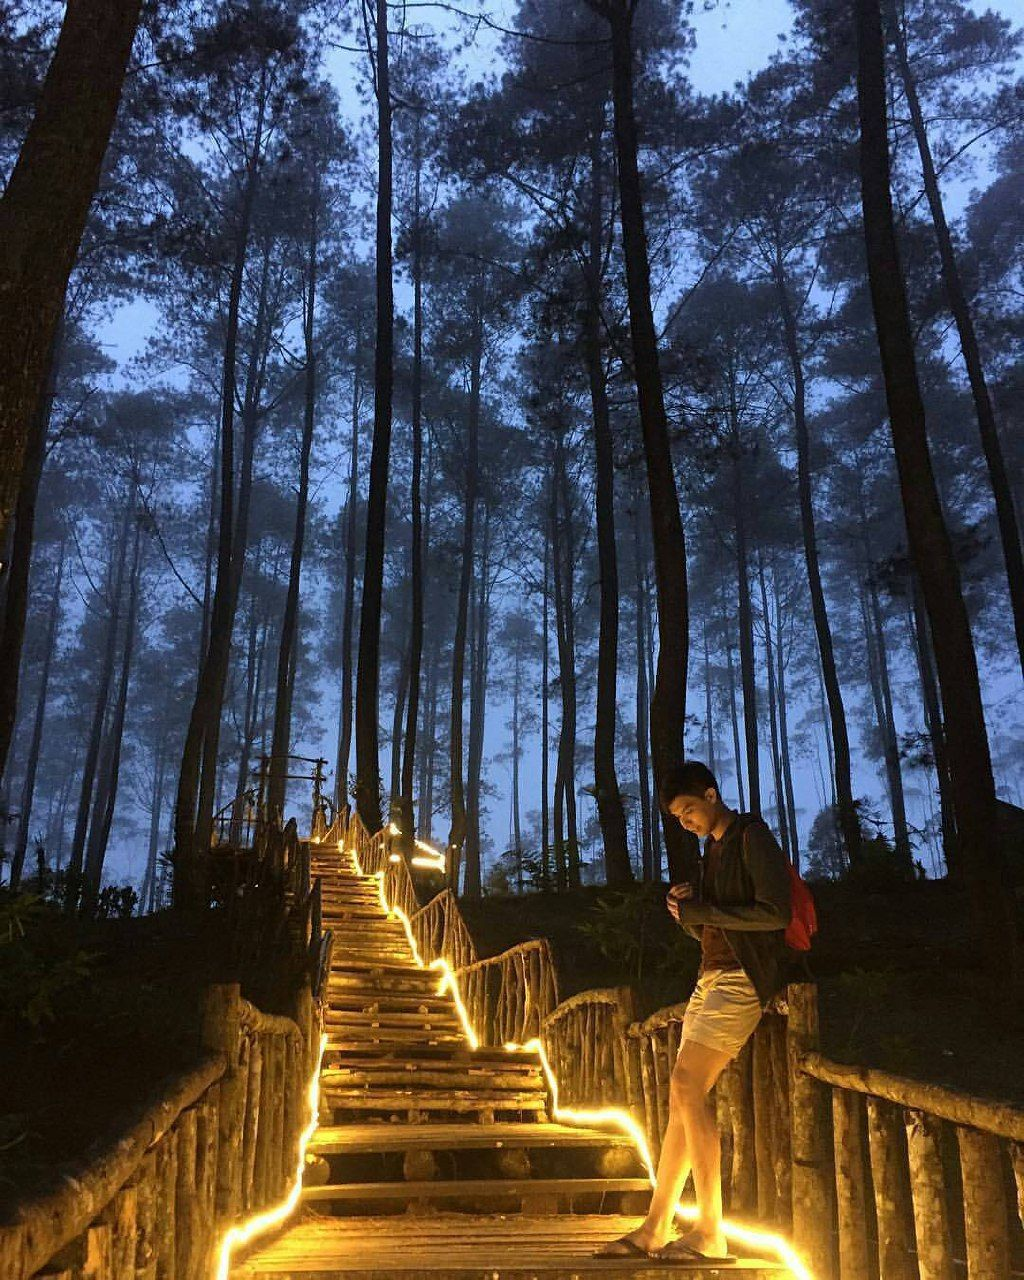 Orchid Forest Lembang has many instagramable spots that